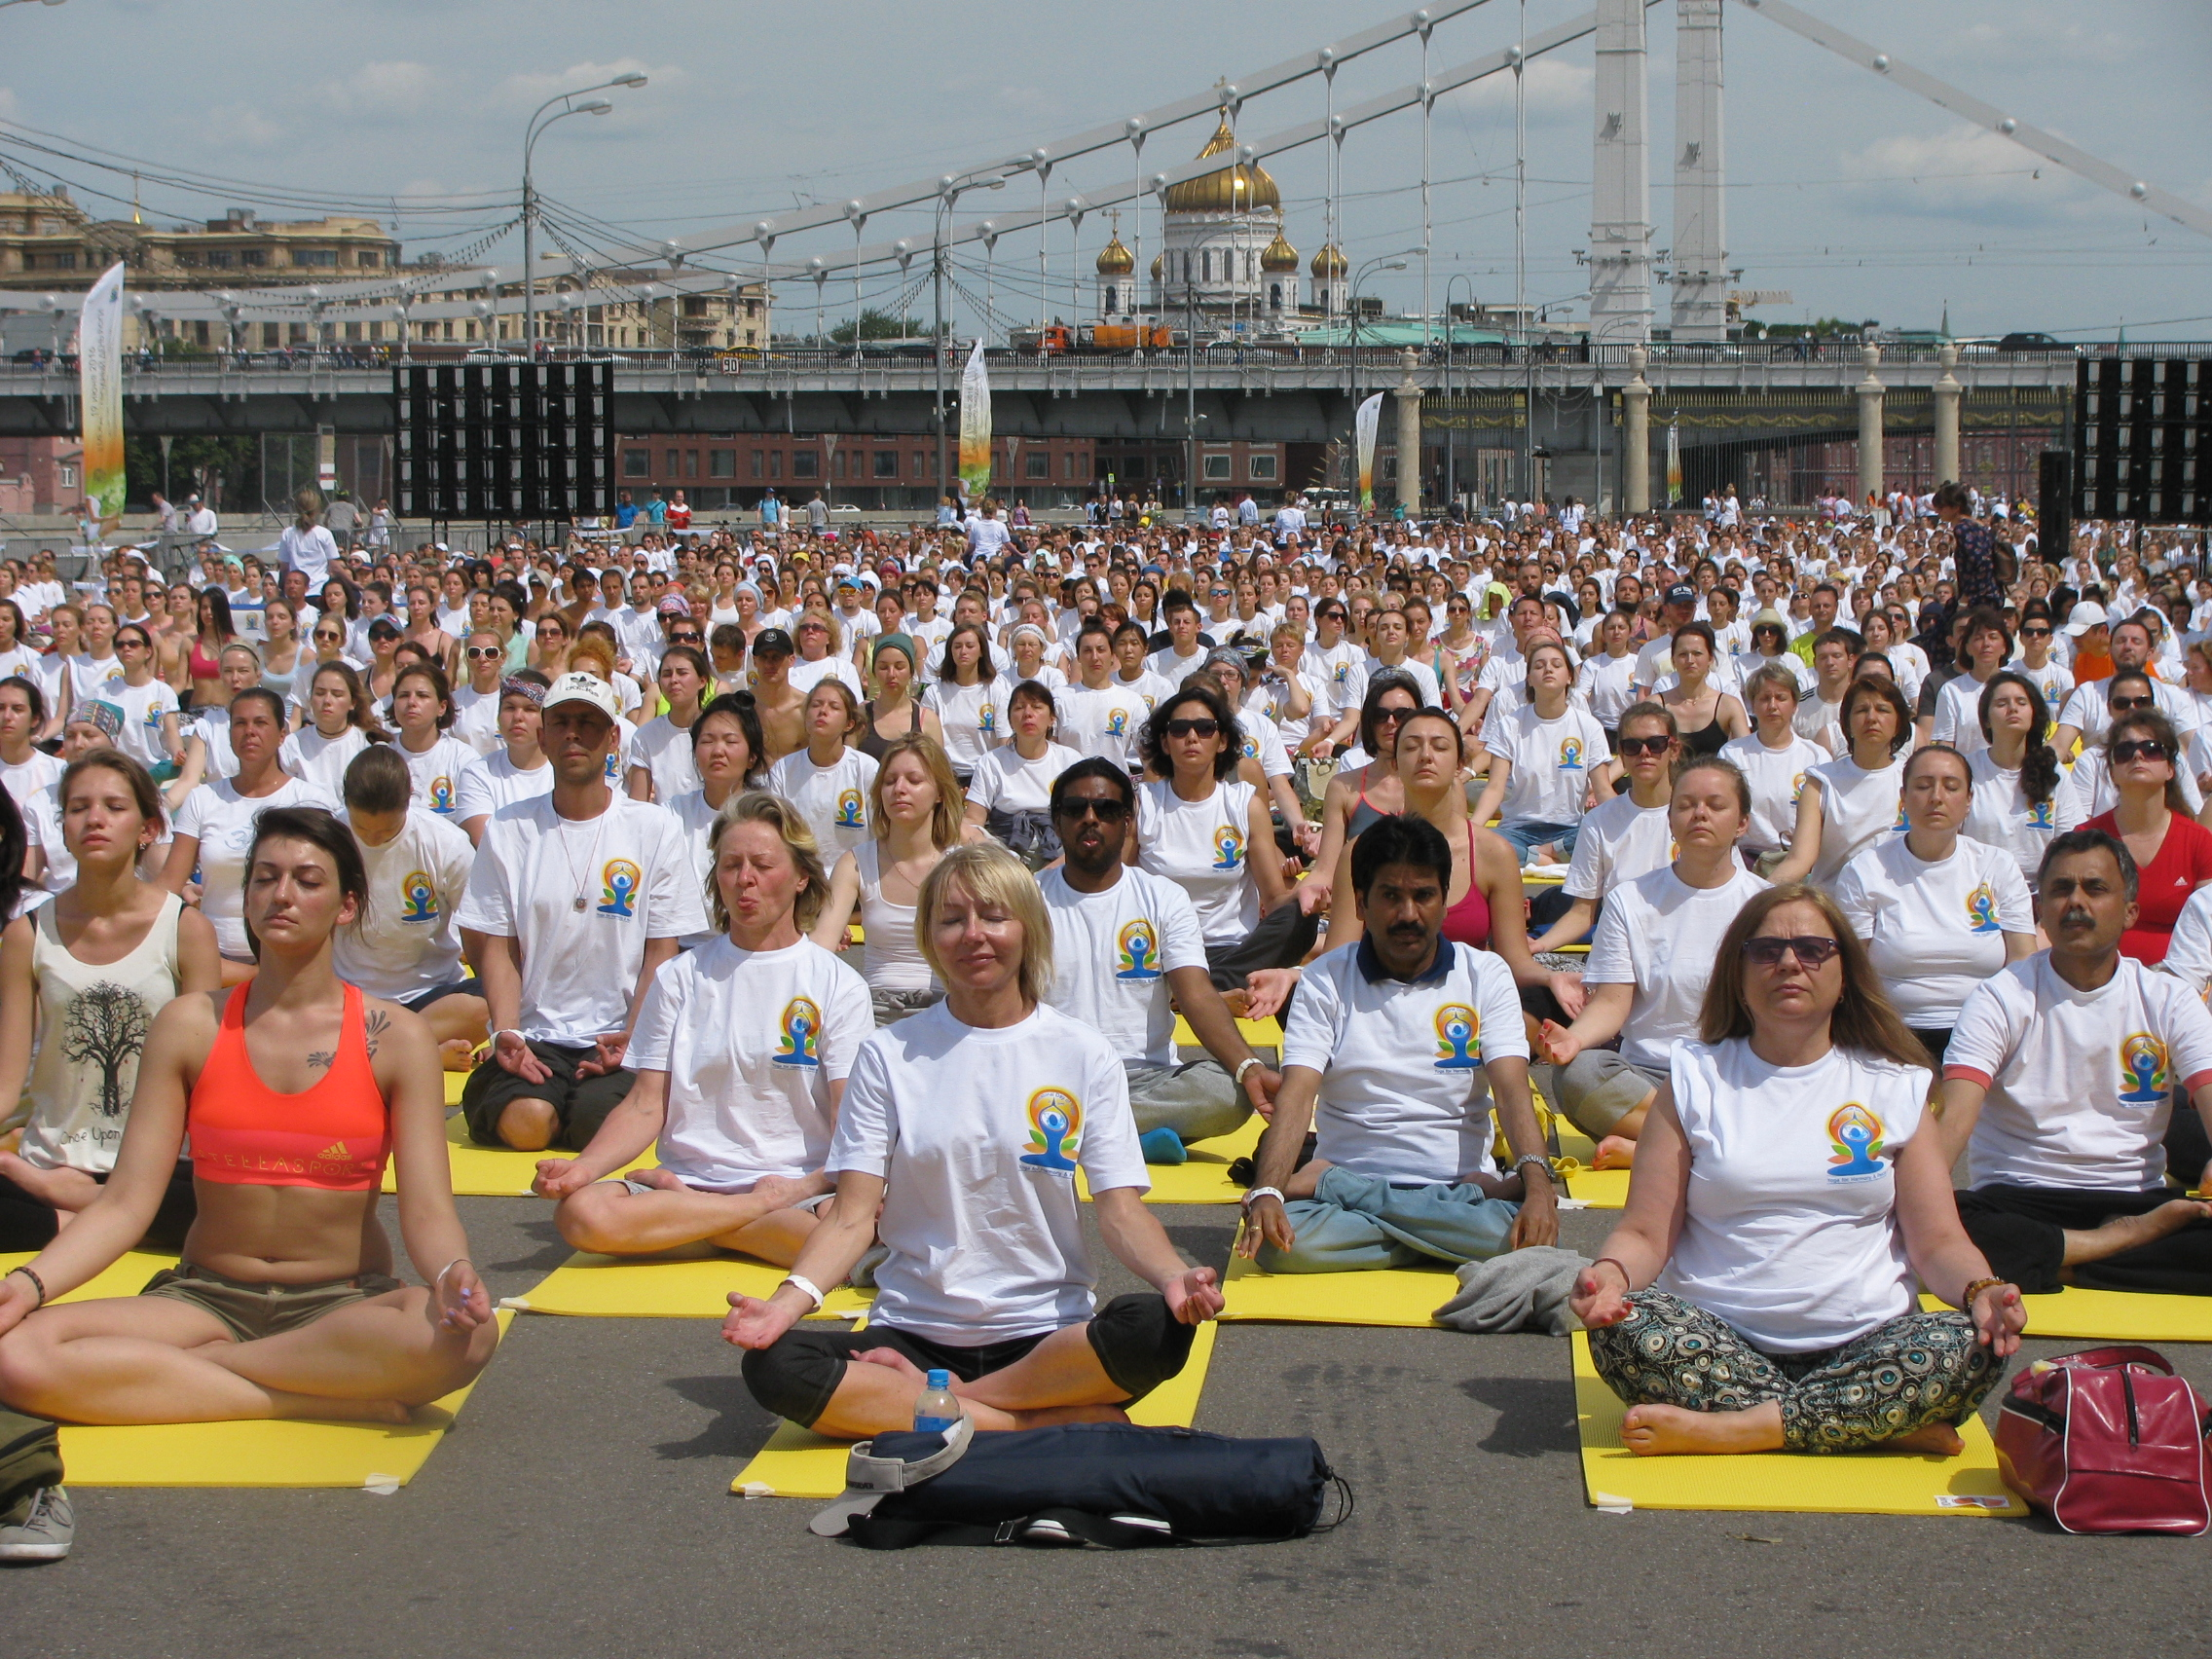 June 21 was declared the official day of yoga in 2014 after an application was lodged to the UN General Assembly to Narendra Modi. At the time his proposal was supported by 170 countries, including Russia. In the Russian Federation, International Yoga Day is celebrated for the second time. This year, large-scale celebrations were organized in Moscow, St. Petersburg, Yekaterinburg, Novosibirsk, Tomsk, and a number of other major Russian cities.